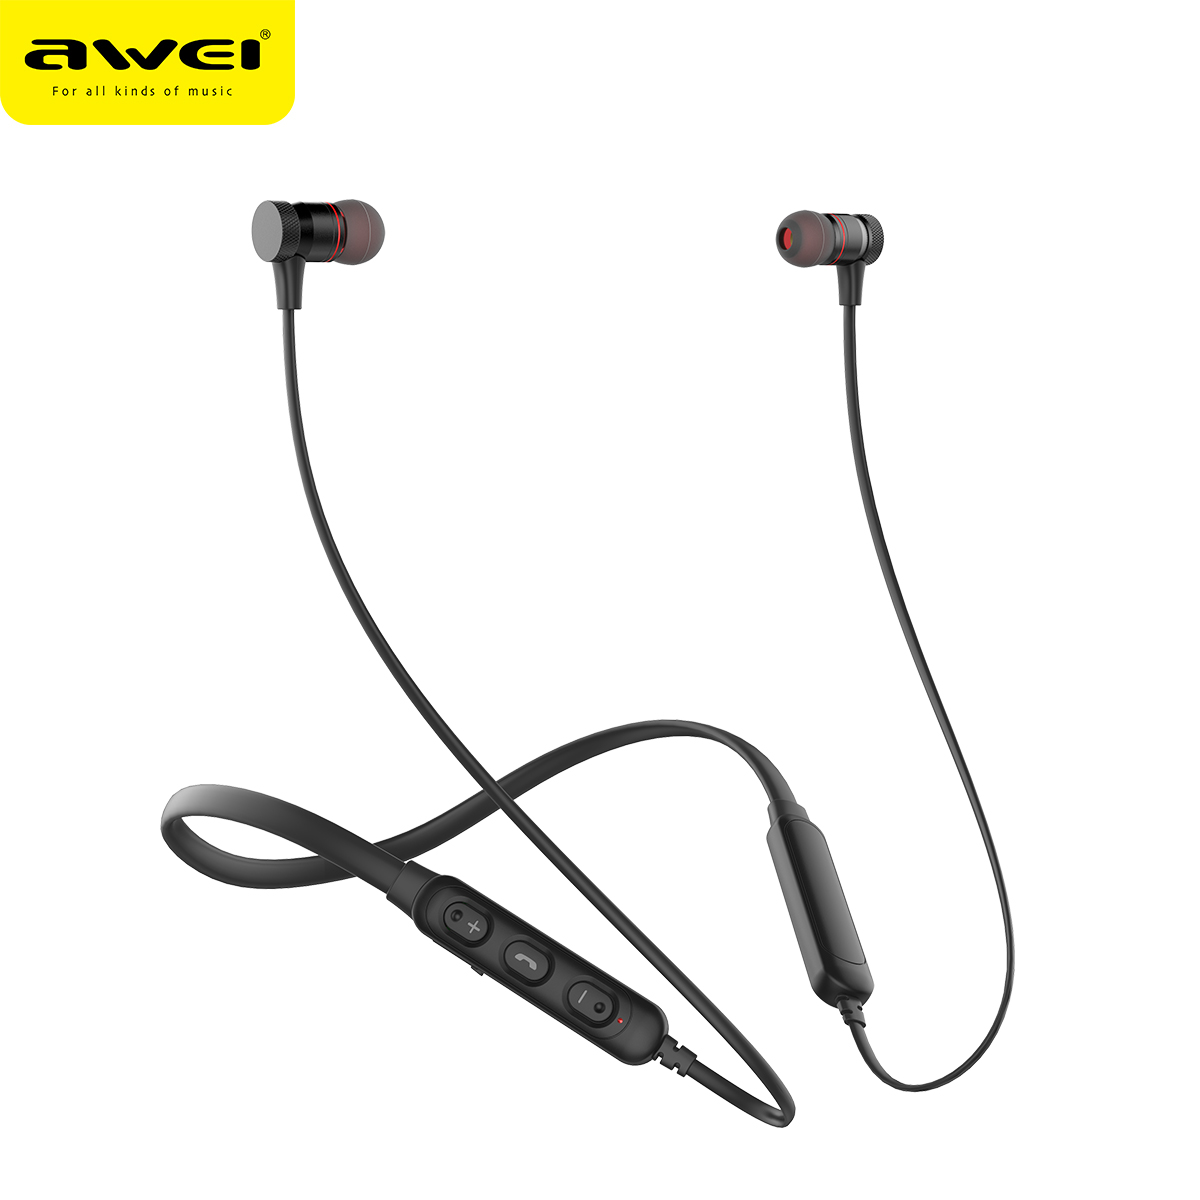 AWEI G10BL Sports Bluetooth Earphone Headphone 3D Stereo Earphone With Mic Noise Cancelling Headset Fone de ouvido Bluetooth awei a920bls bluetooth headphone fone de ouvido wireless earphone sports headset hands free casque with mic audifonos cordless